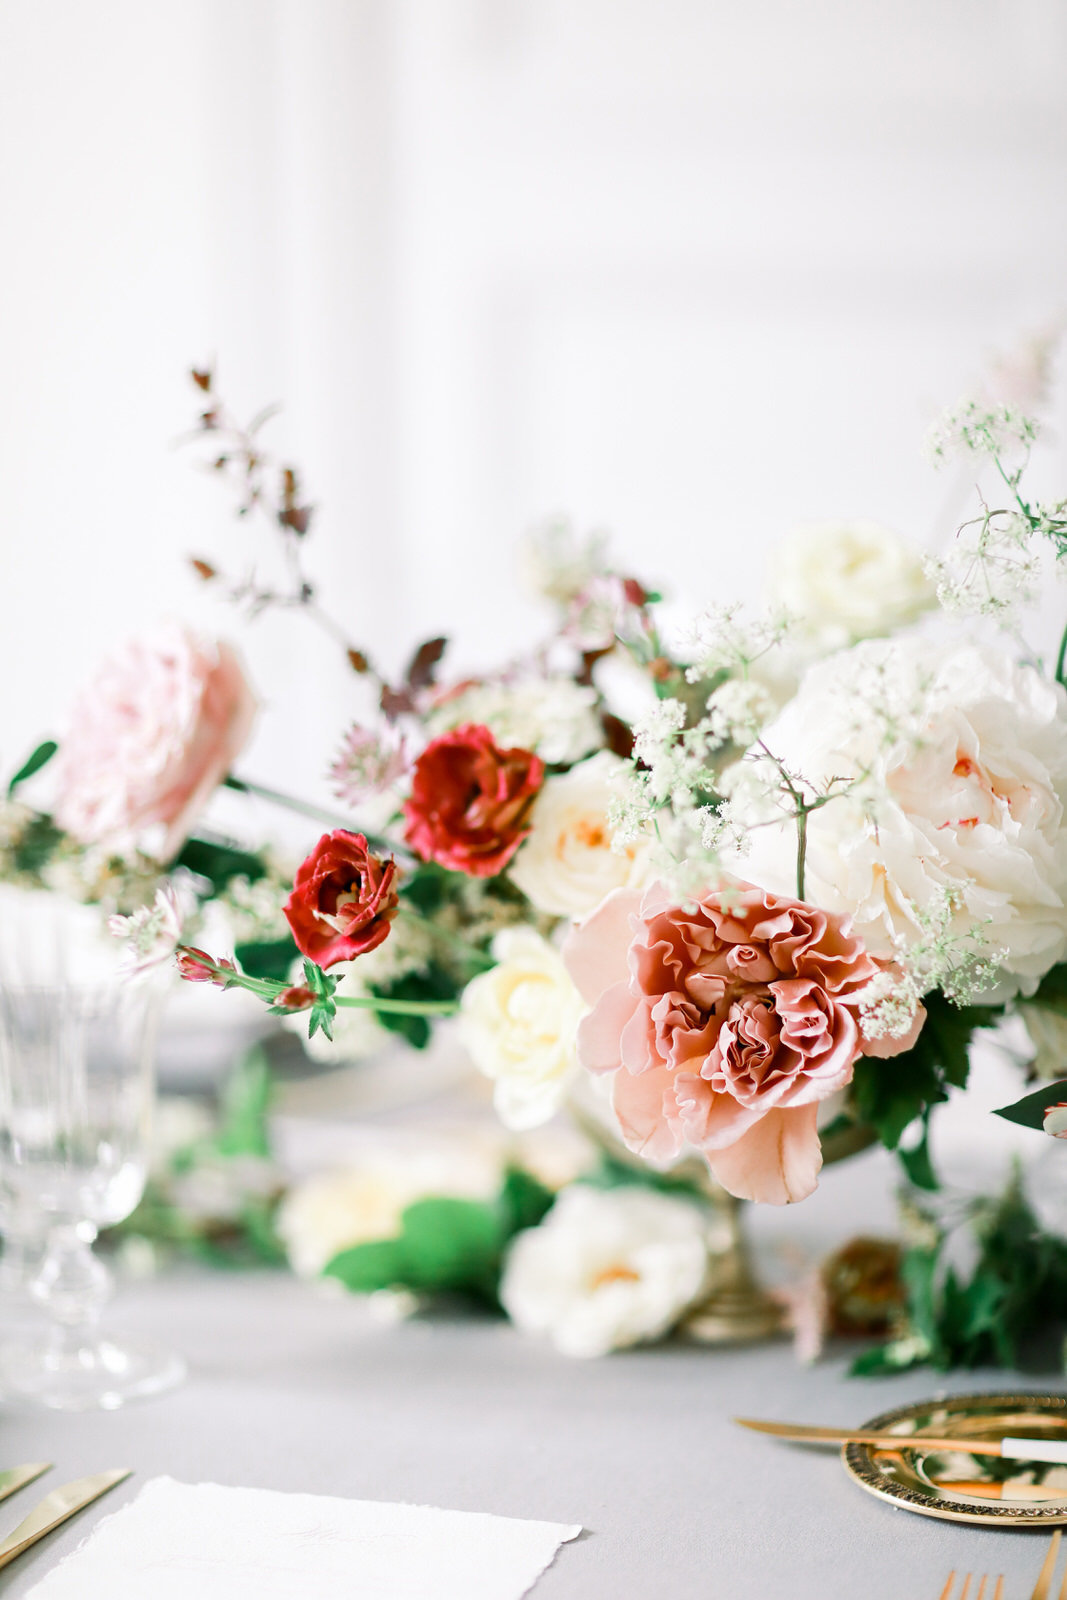 A destination wedding photographer based in North Carolina photographs a classic French wedding table at a Paris wedding.